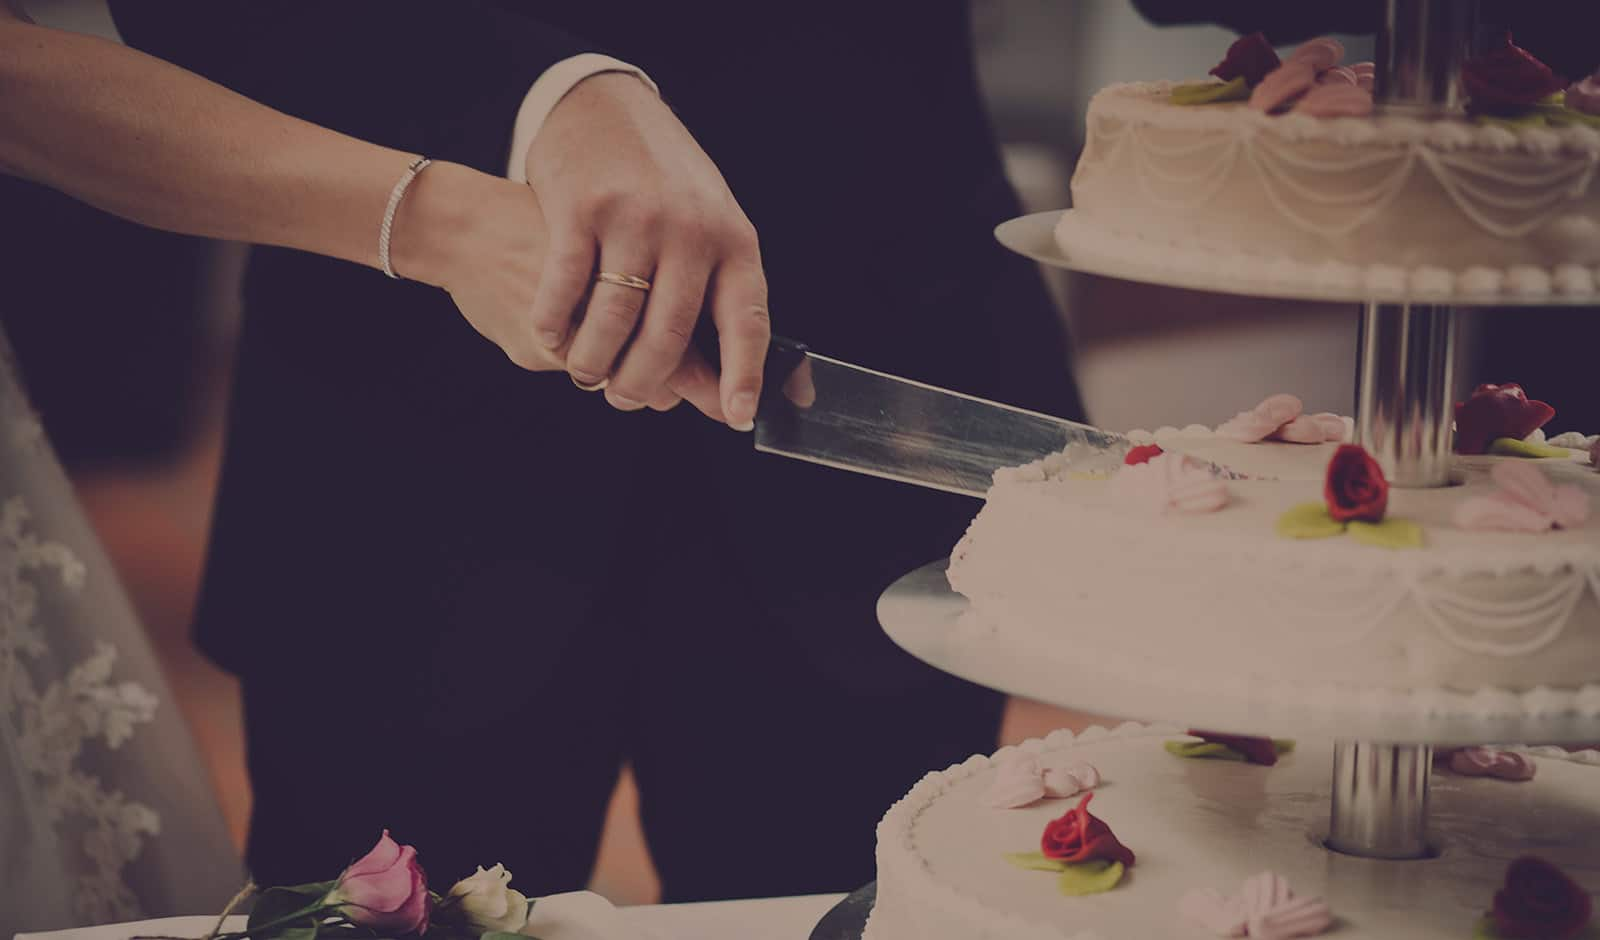 married people cut the wedding cake